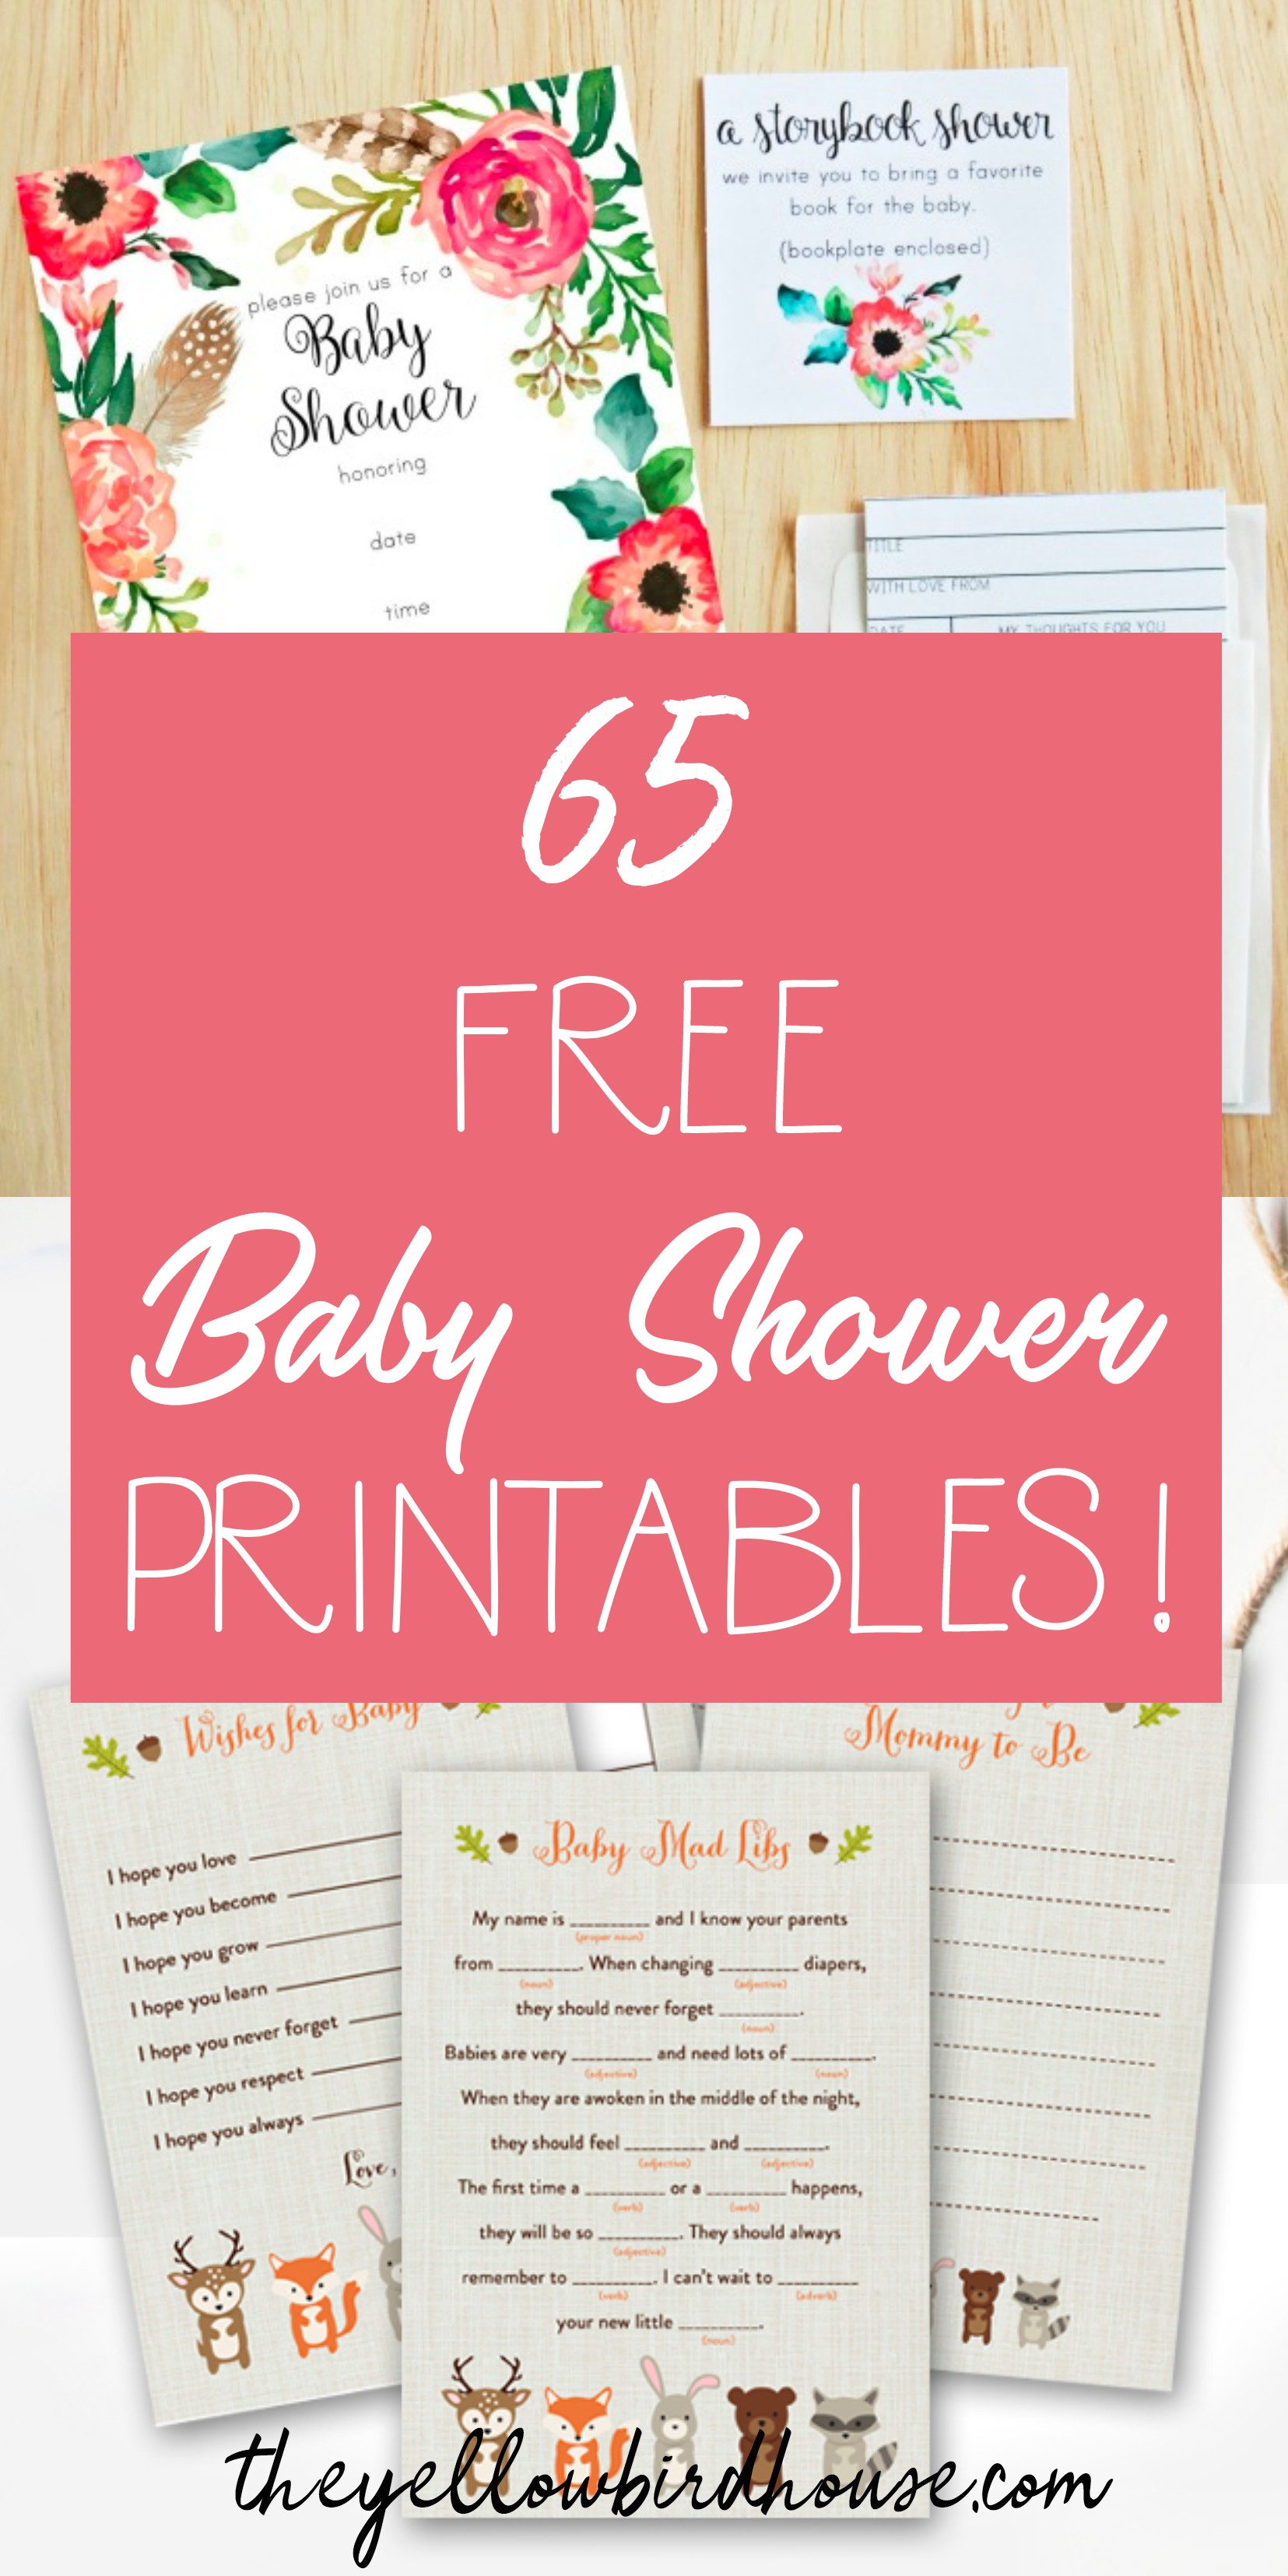 65 Free Baby Shower Printables For An Adorable Party